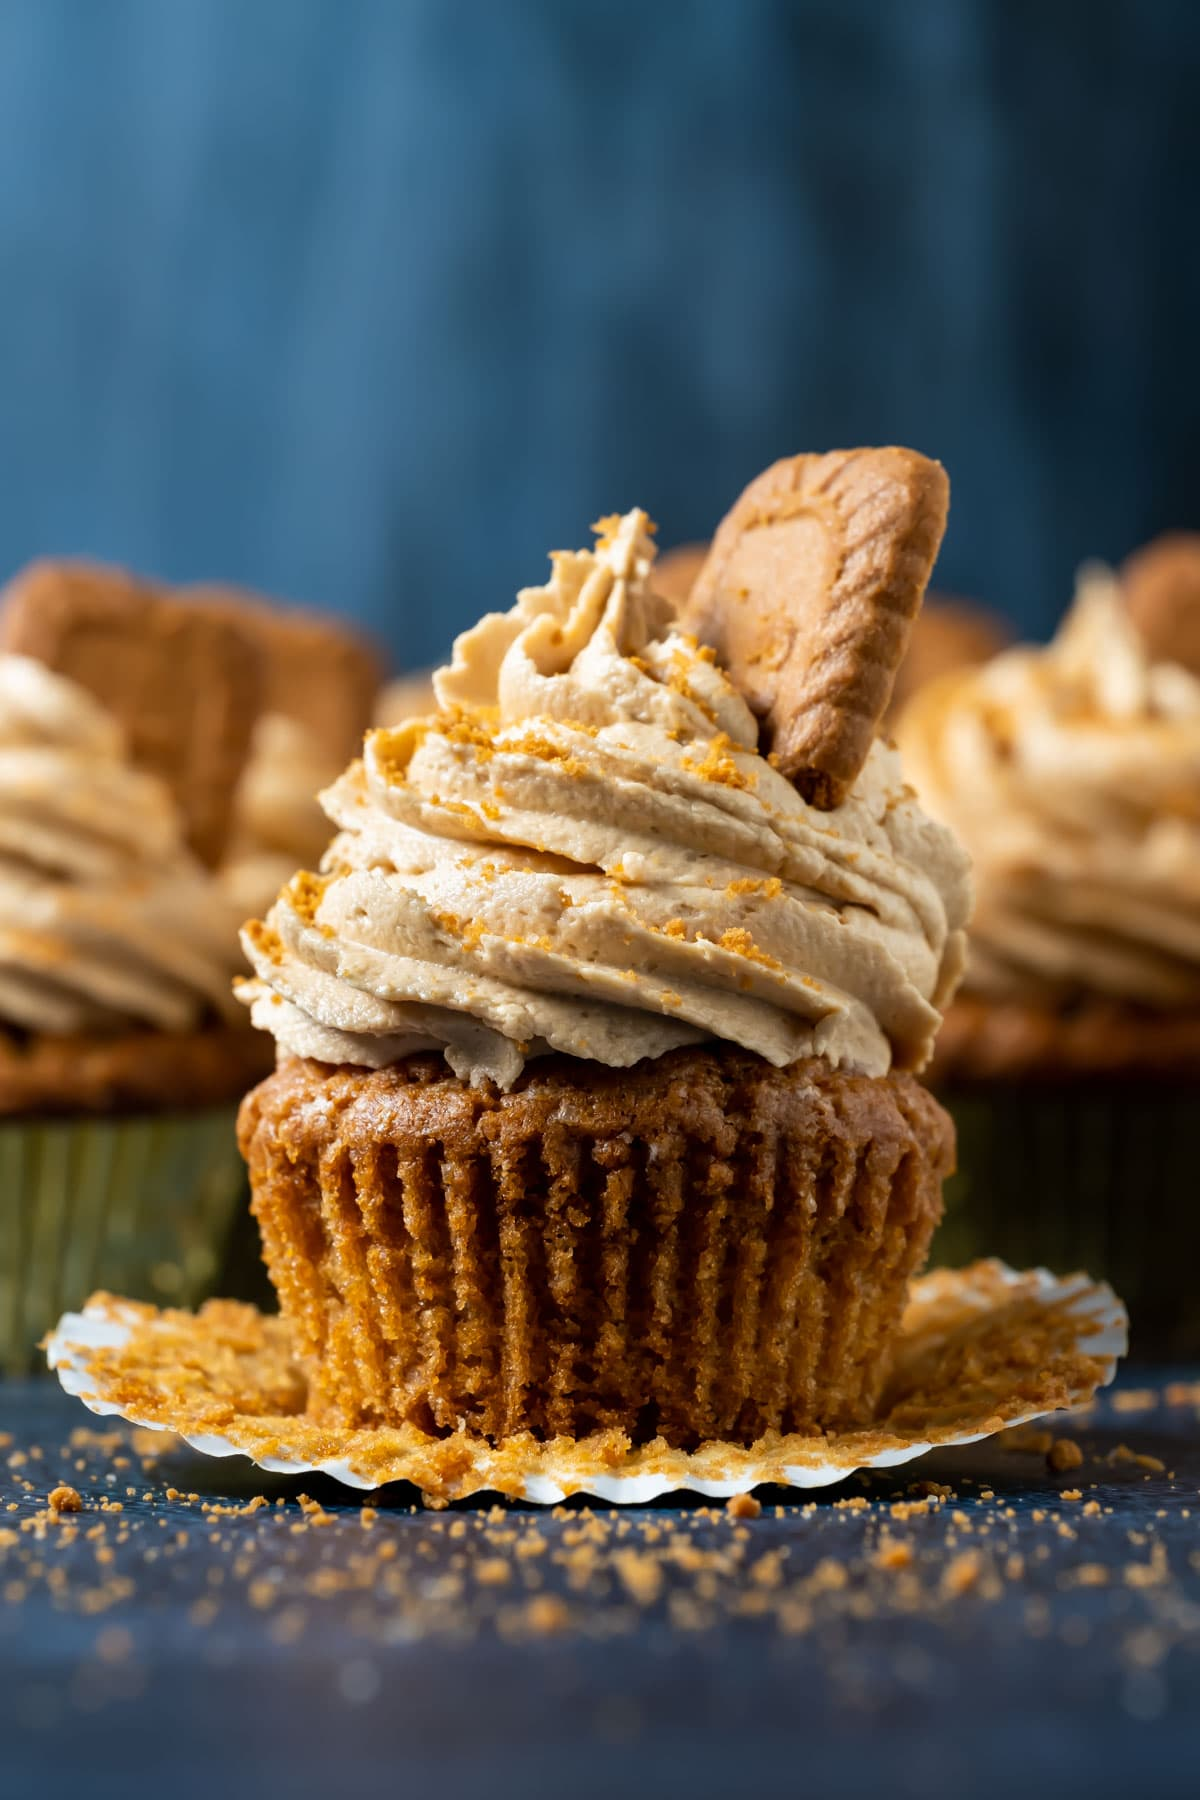 Biscoff cupcake with the liner pulled down.